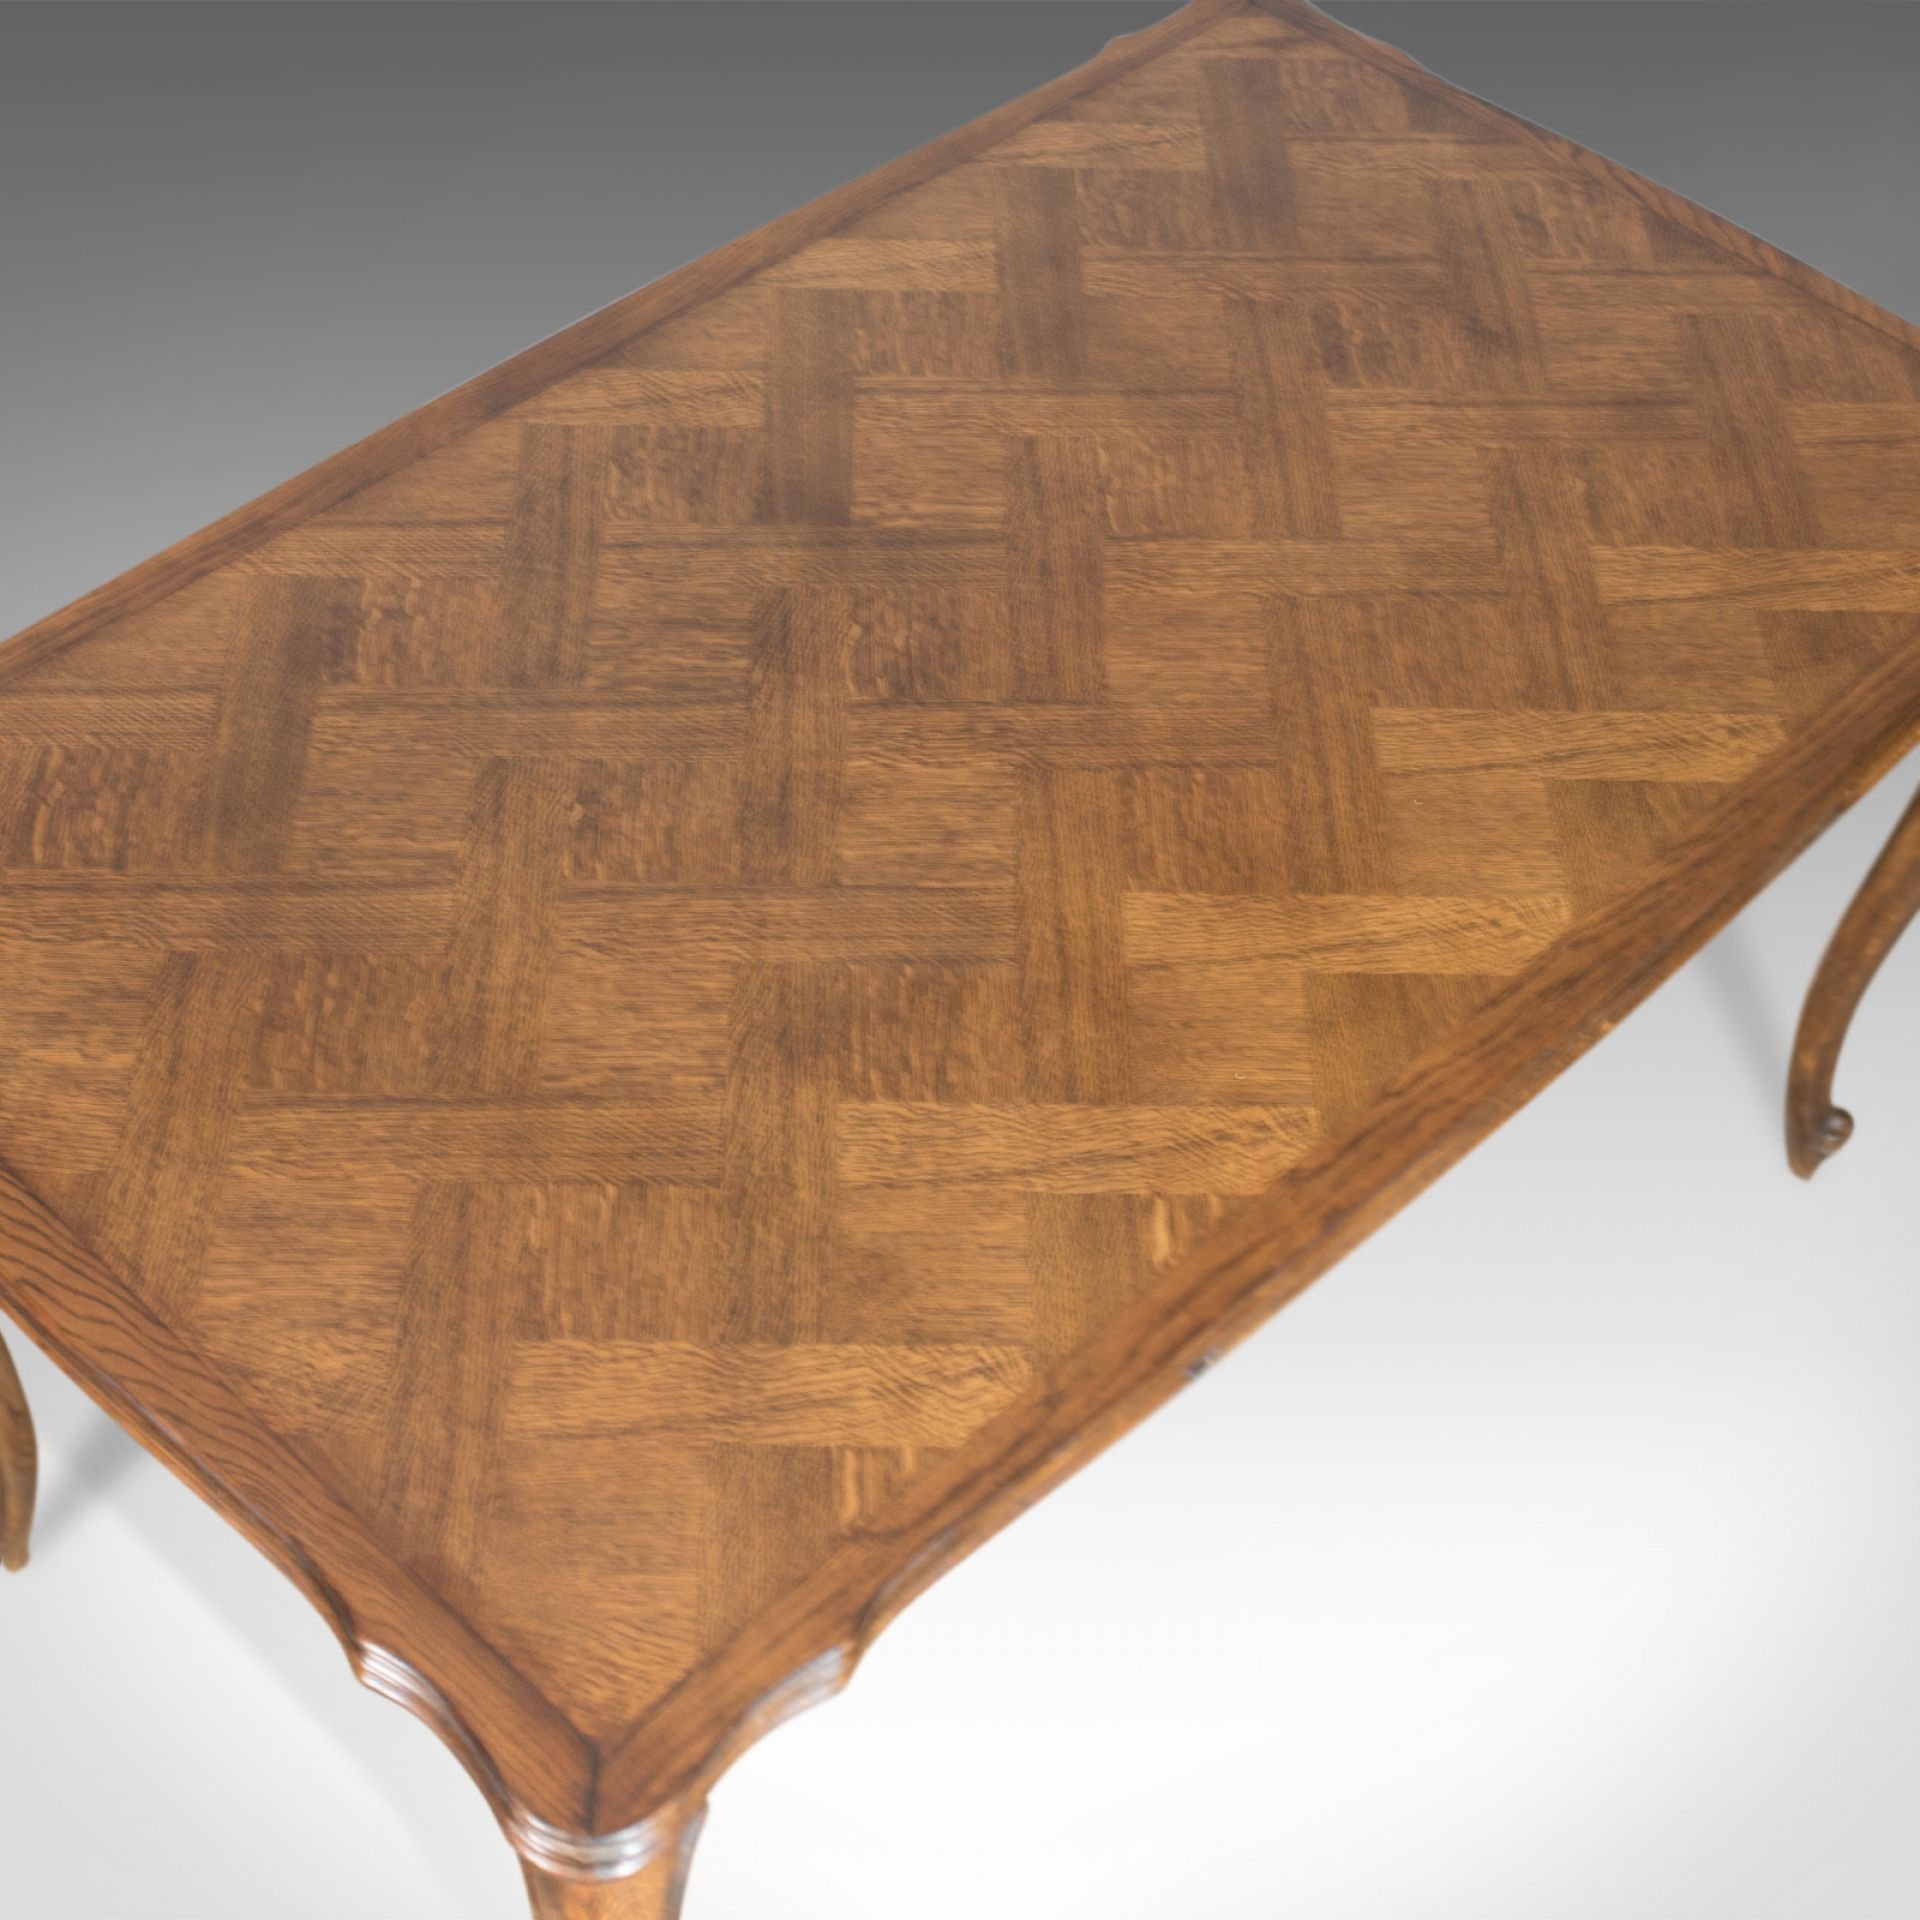 Antique Dining Table, Extending, Draw Leaf French Parquet, Seats Ten Early C20th